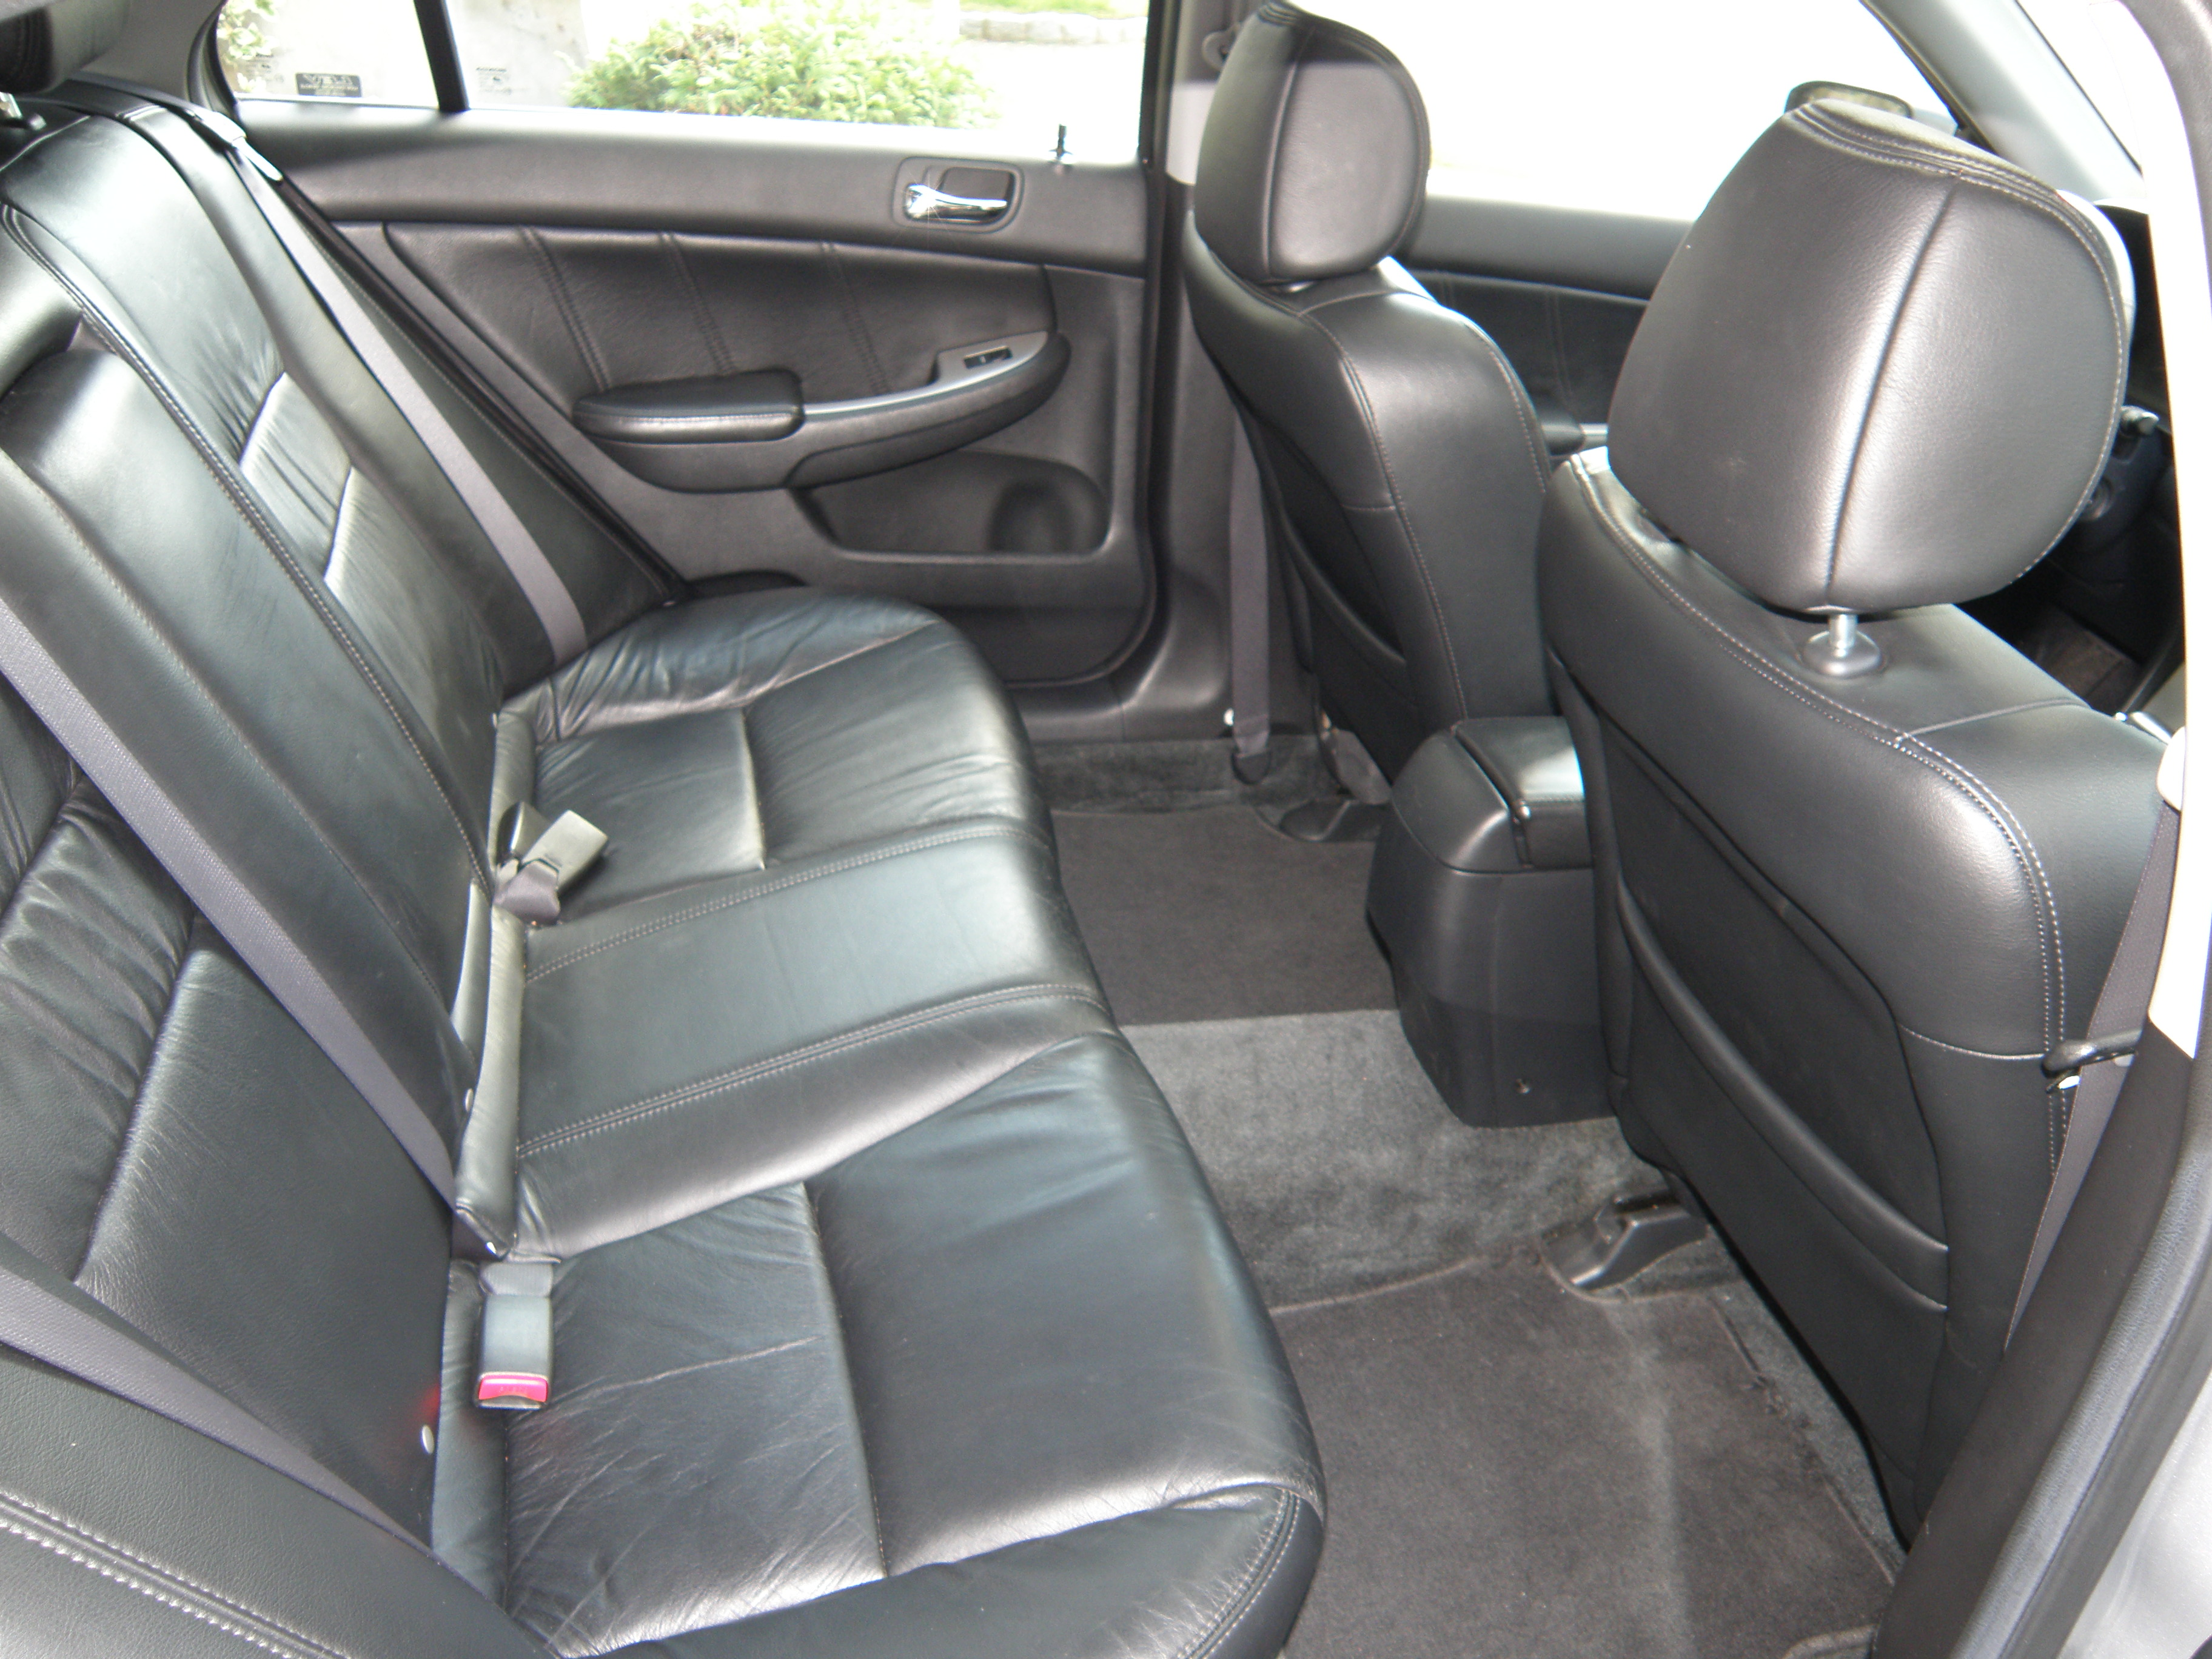 2003 Honda Accord Leather Interior 1999 Egtist Specs Photos Modification Info At Cardomain 3648x2736